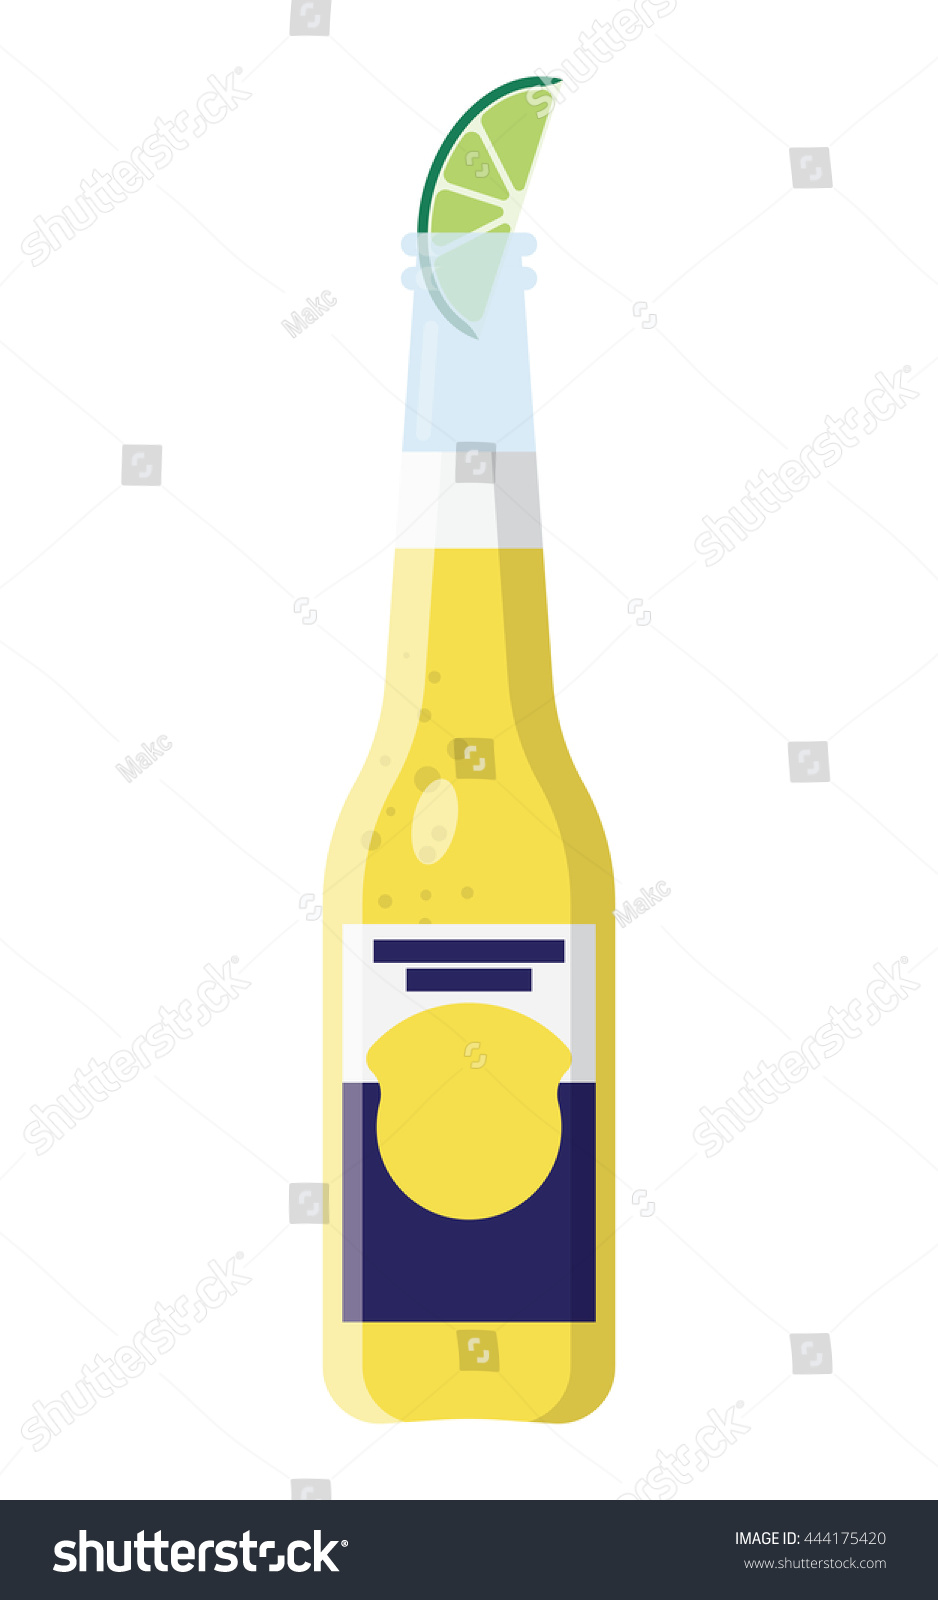 Clip Art Beer Bottle Clip Art beer bottle slice lime clip art stock vector 444175420 shutterstock with a of in format